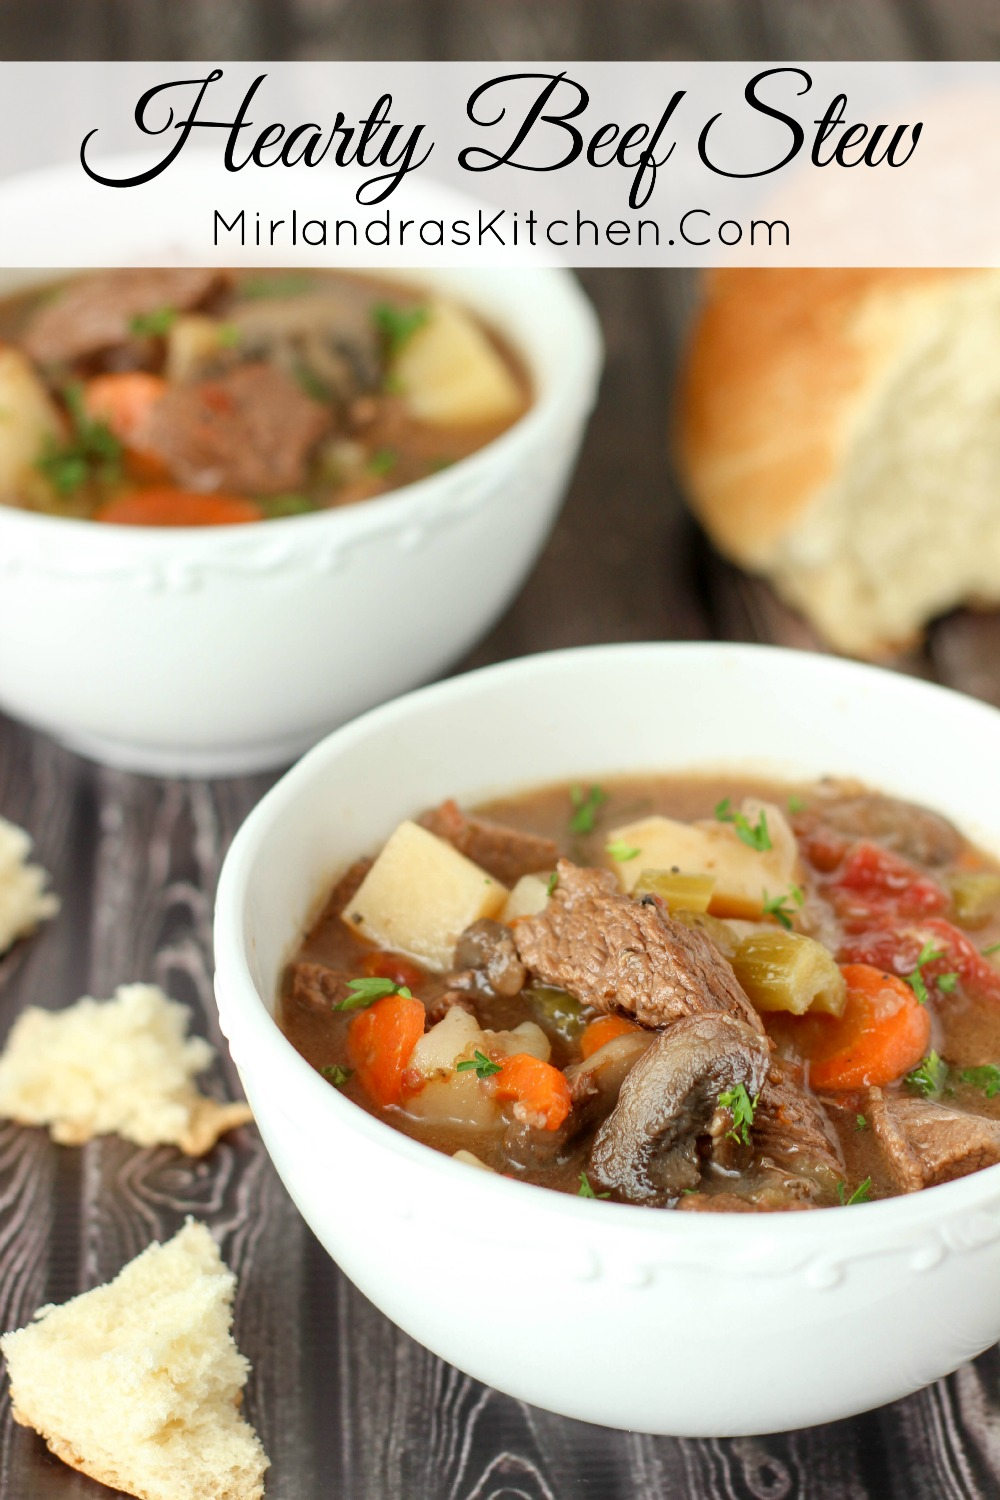 This hearty Beef Stew is ready to go in the oven in about 30 minutes.  Slow oven heat makes tender beef and savory stew.  Great for stocking the freezer!